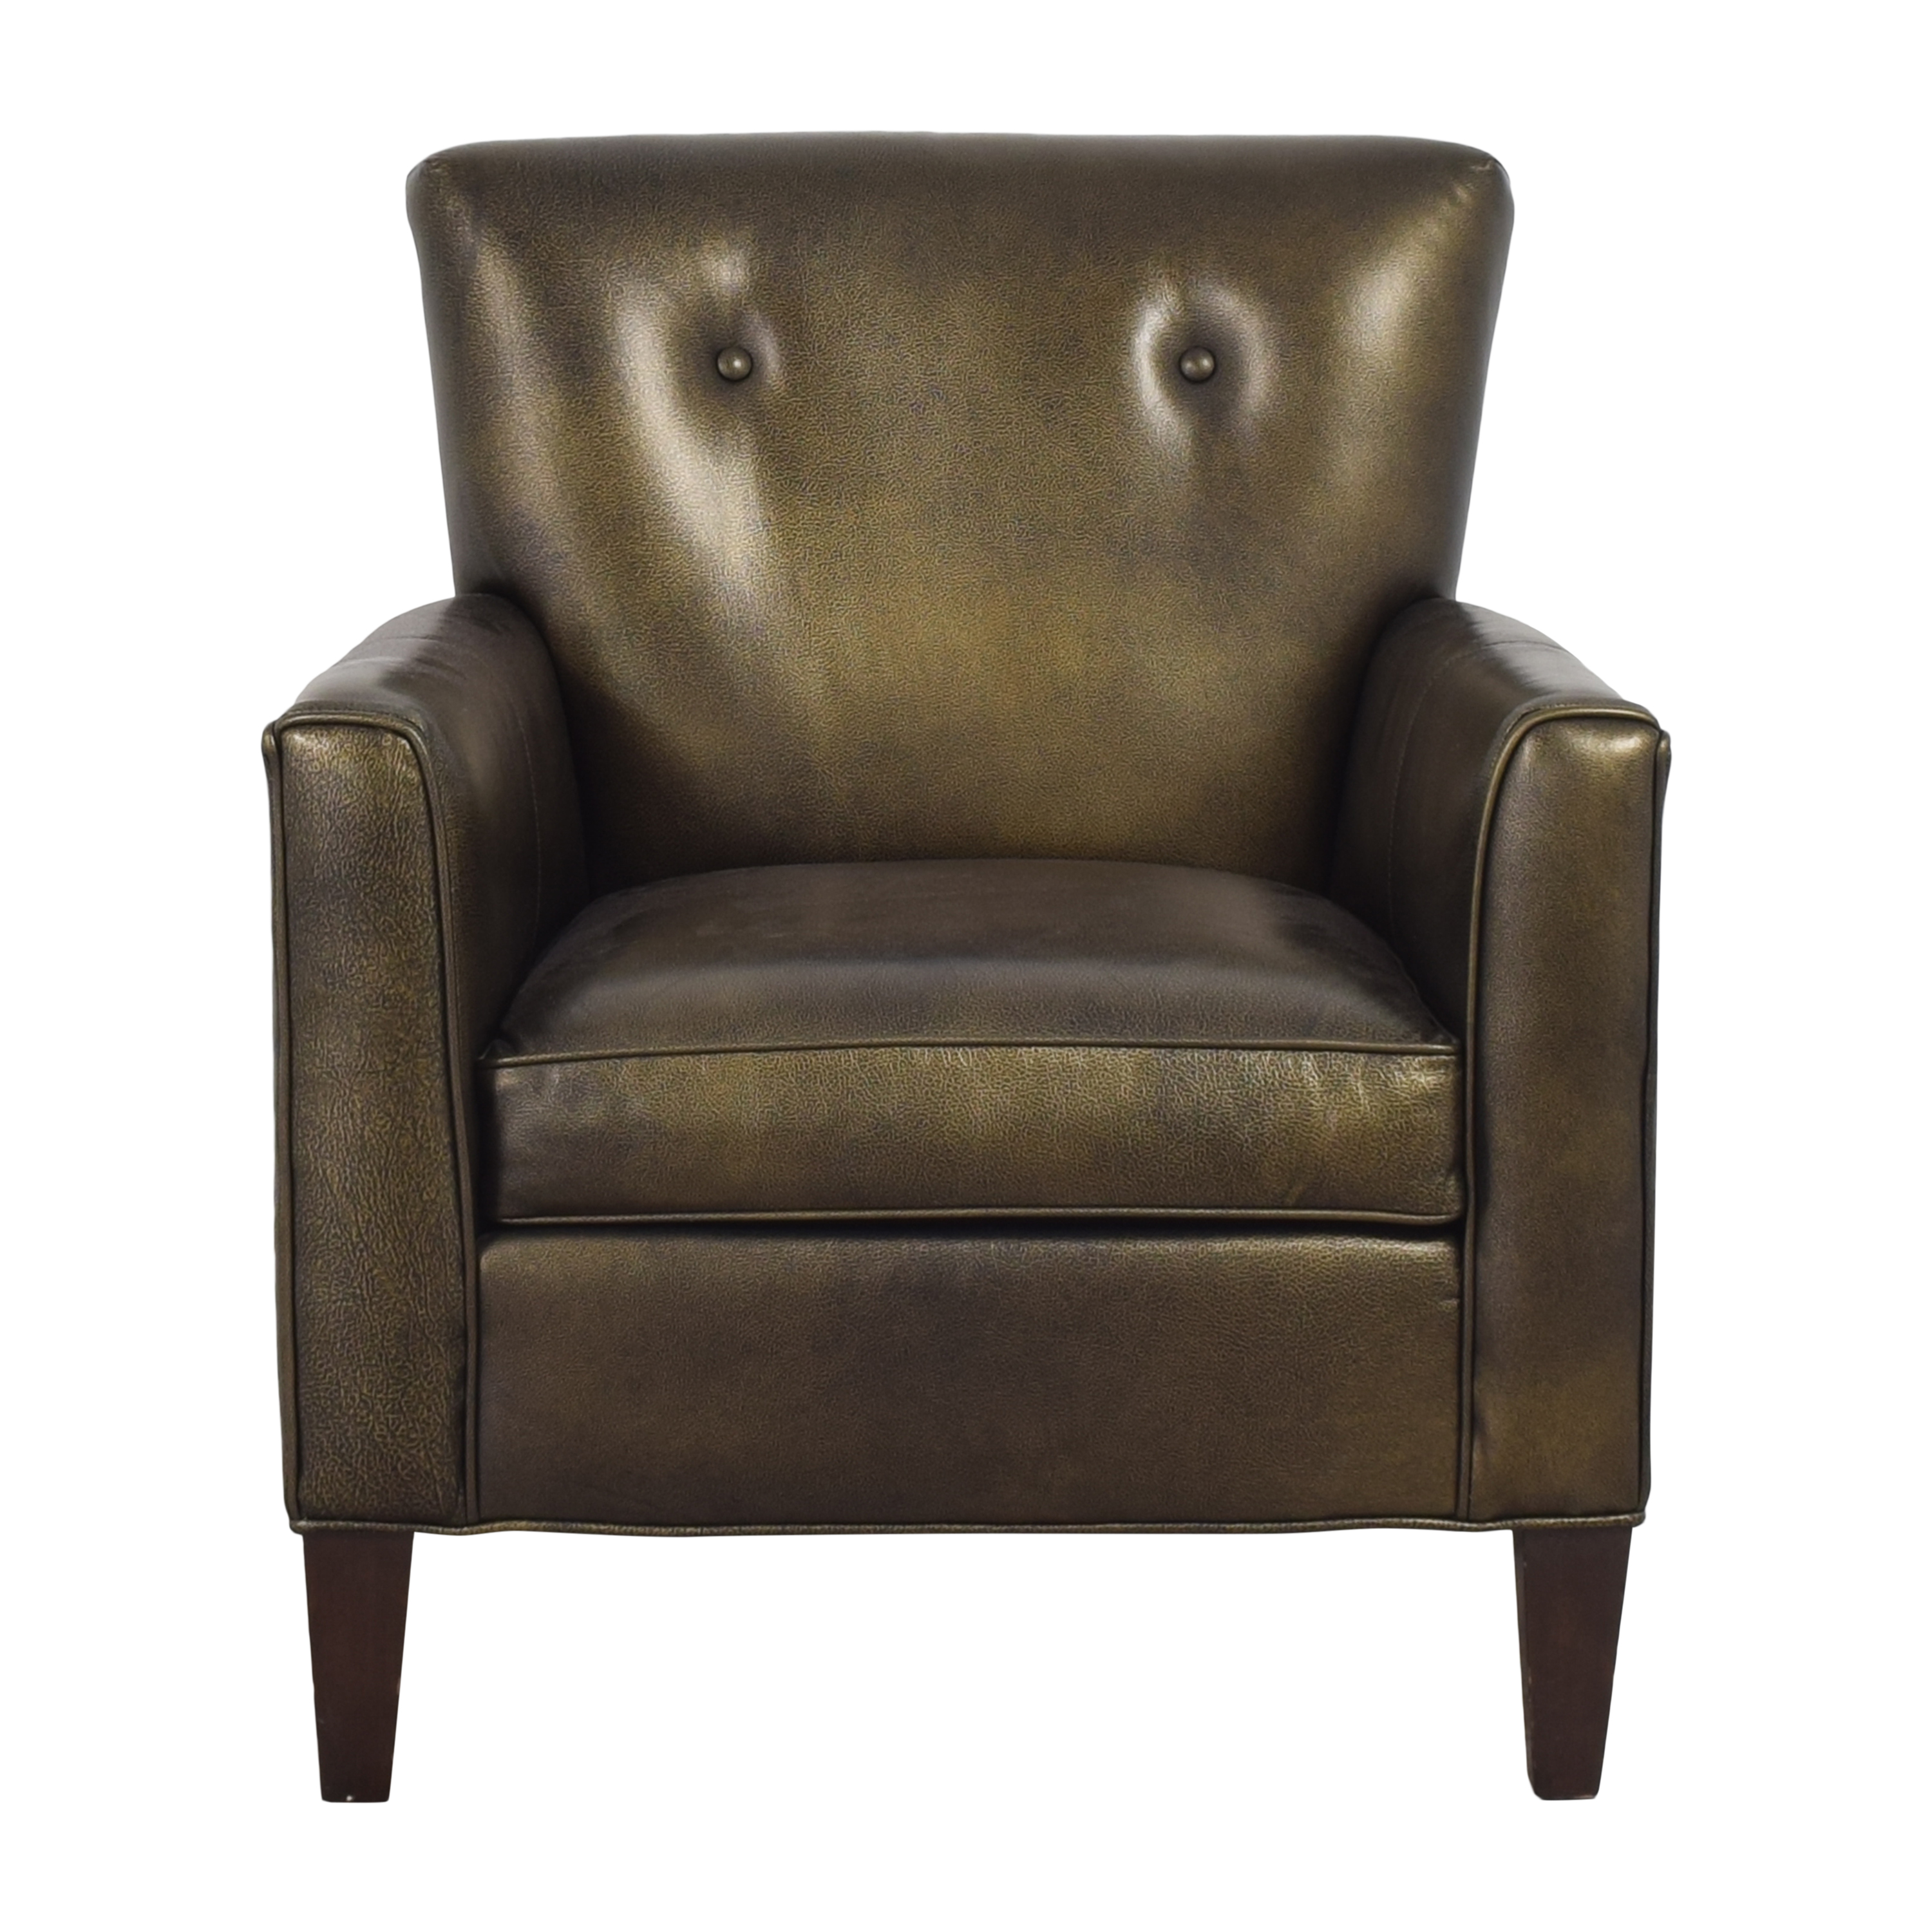 buy Ethan Allen Tufted Wingback Chair Ethan Allen Accent Chairs